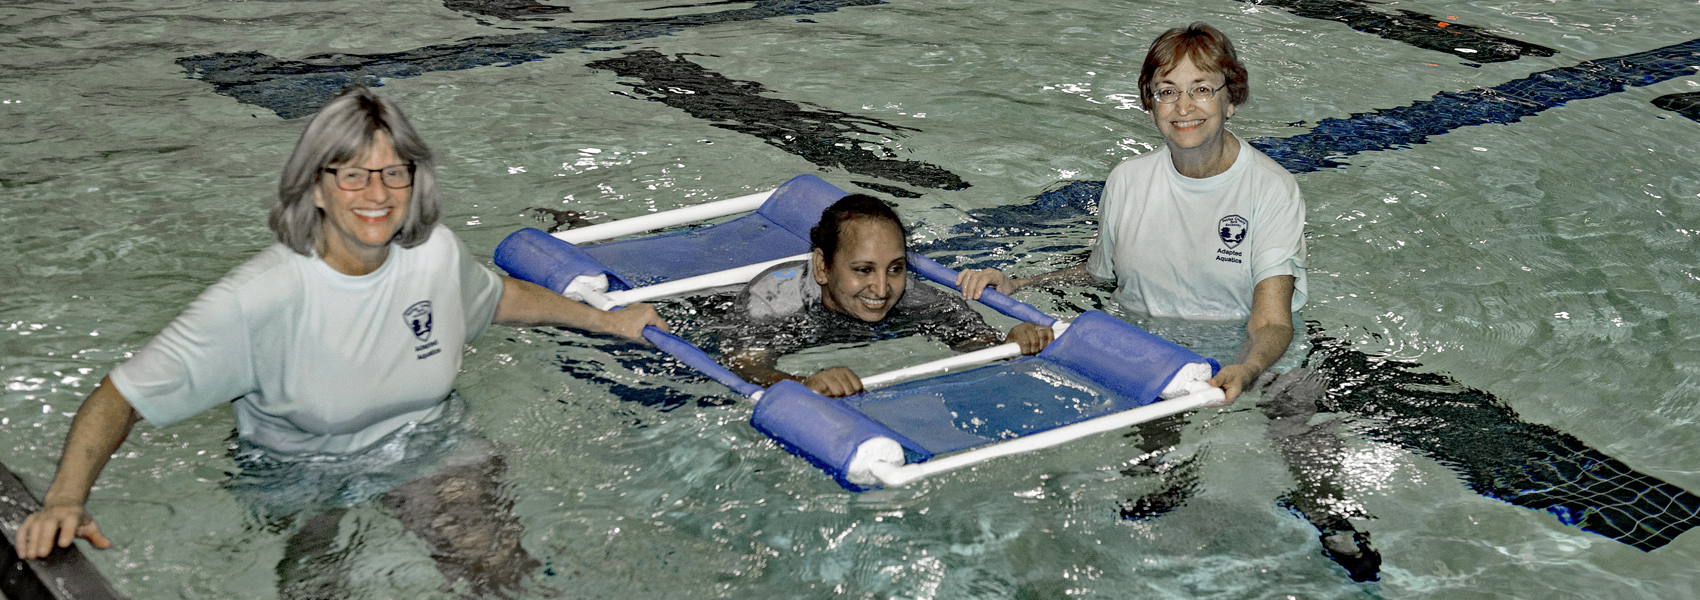 Adapted aquatics volunteers with swimmer in floating frame